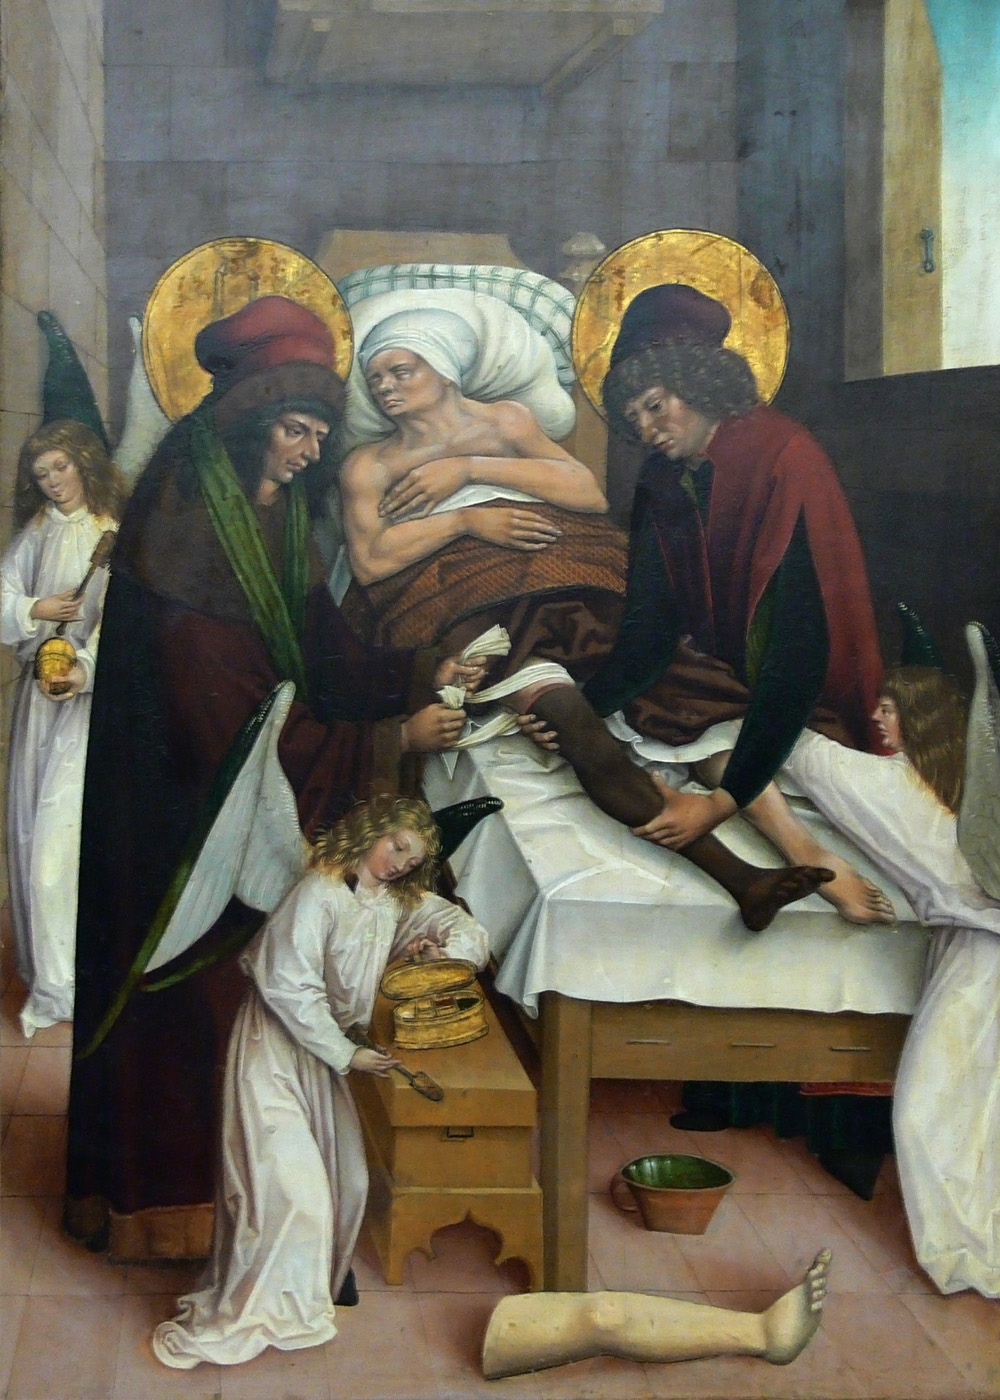 COSMOS AND DAMIEN,TWINS,DOCTORS,PHYSICIANS,TRANSPLANT,LEG